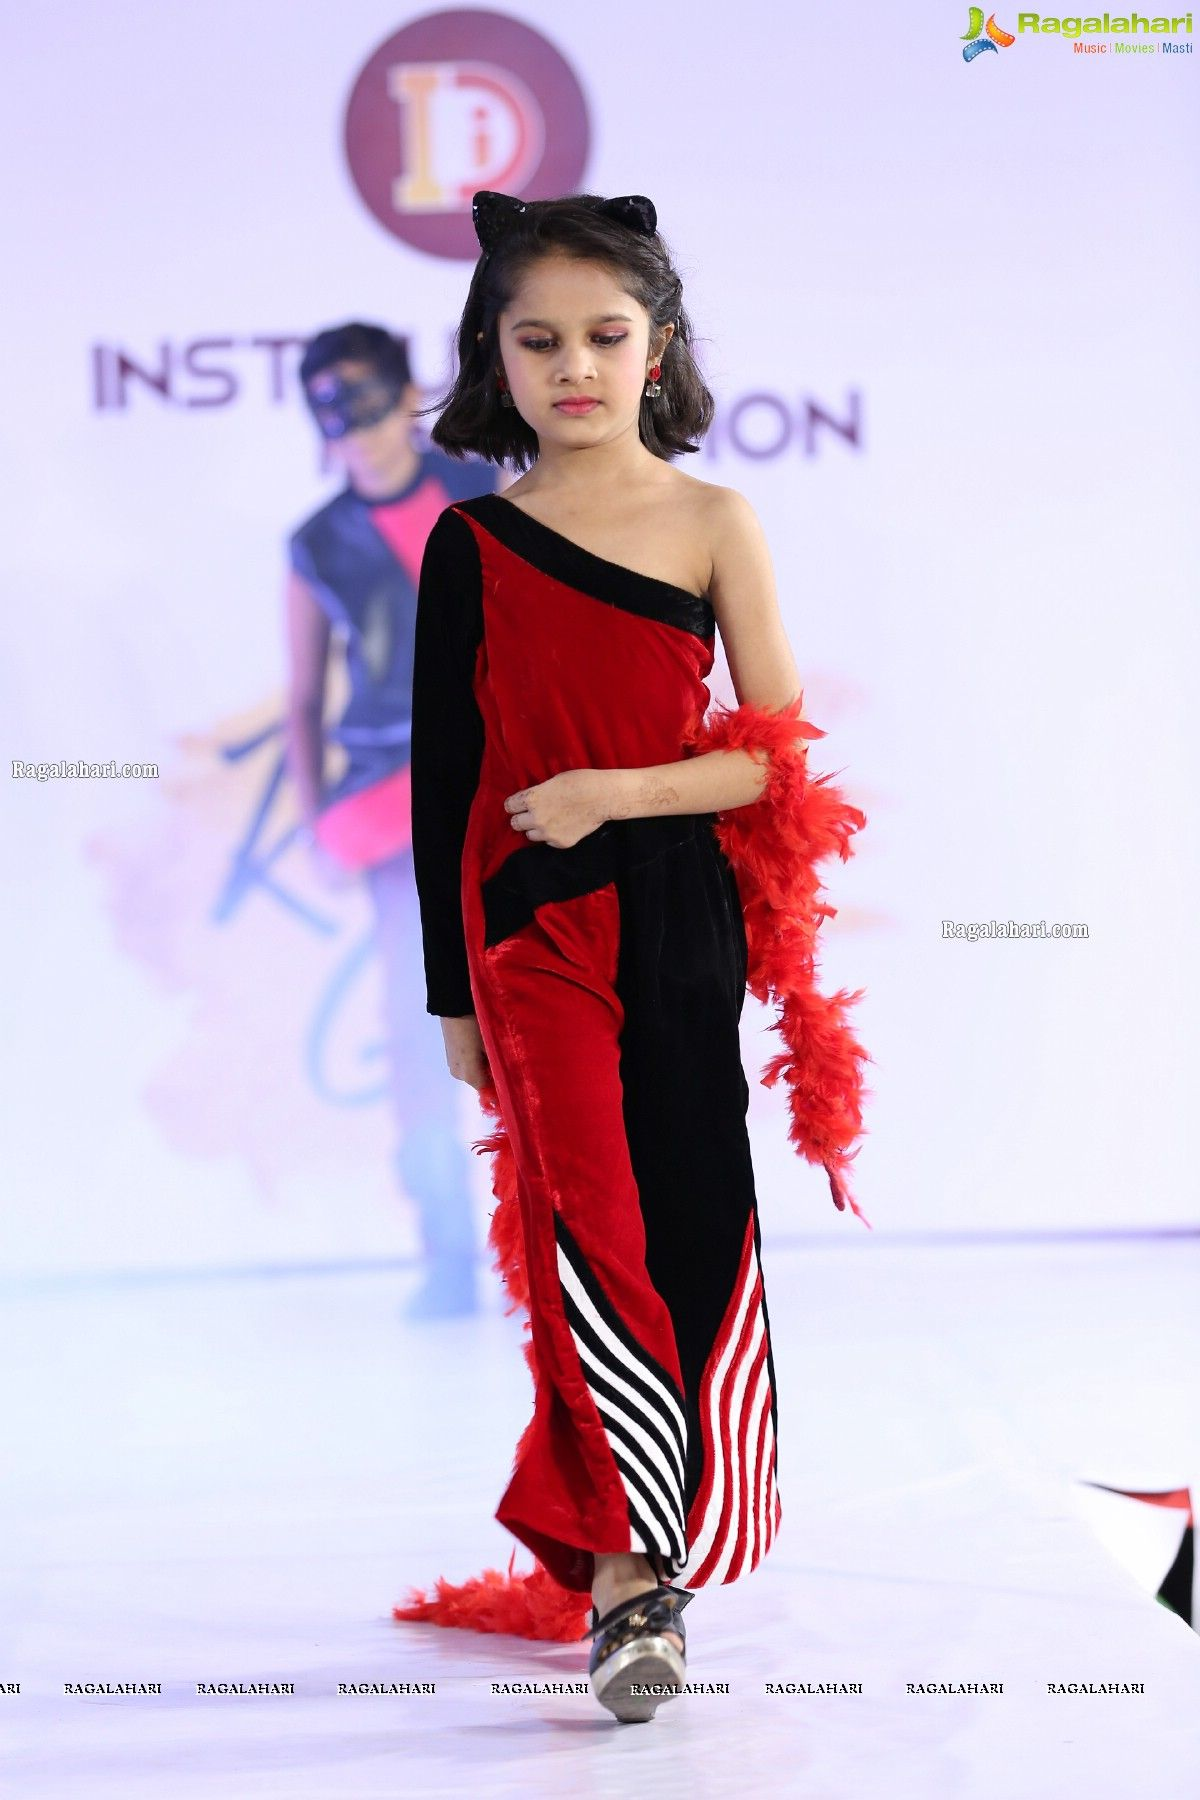 Pin By Instituto Design Innovation On Designer Bindiya In 2020 Fashion Fashion Design Cool Style